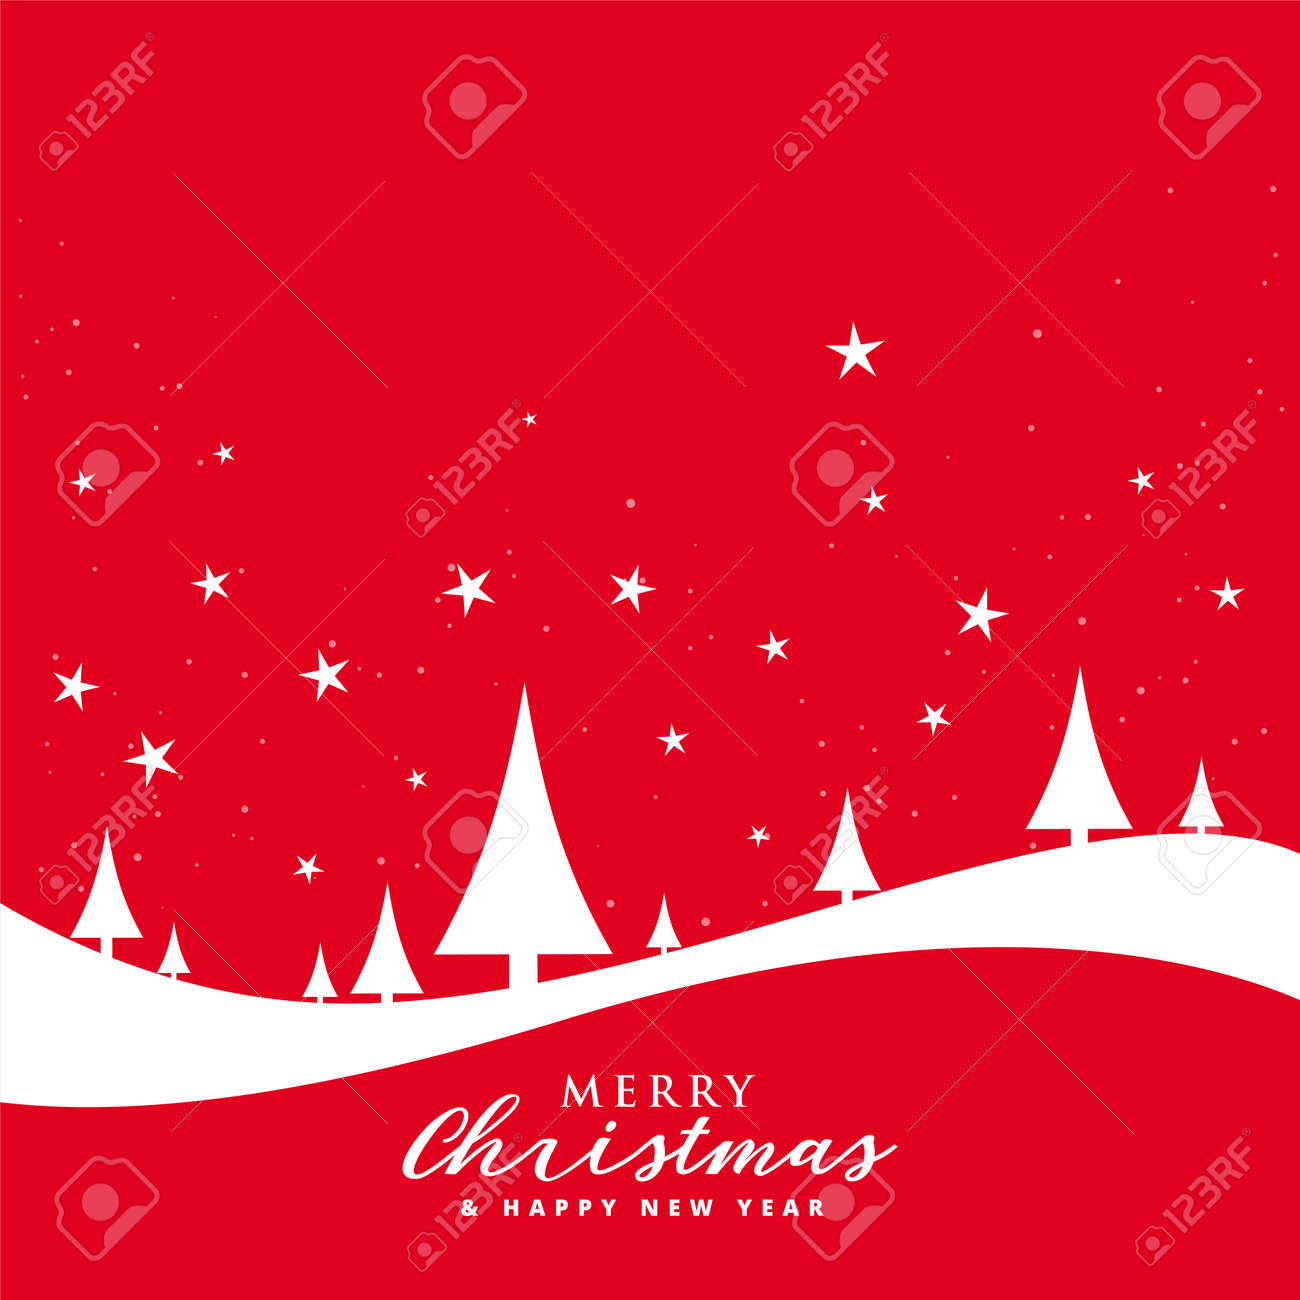 lovely merry christmas red flat style background - 159389036